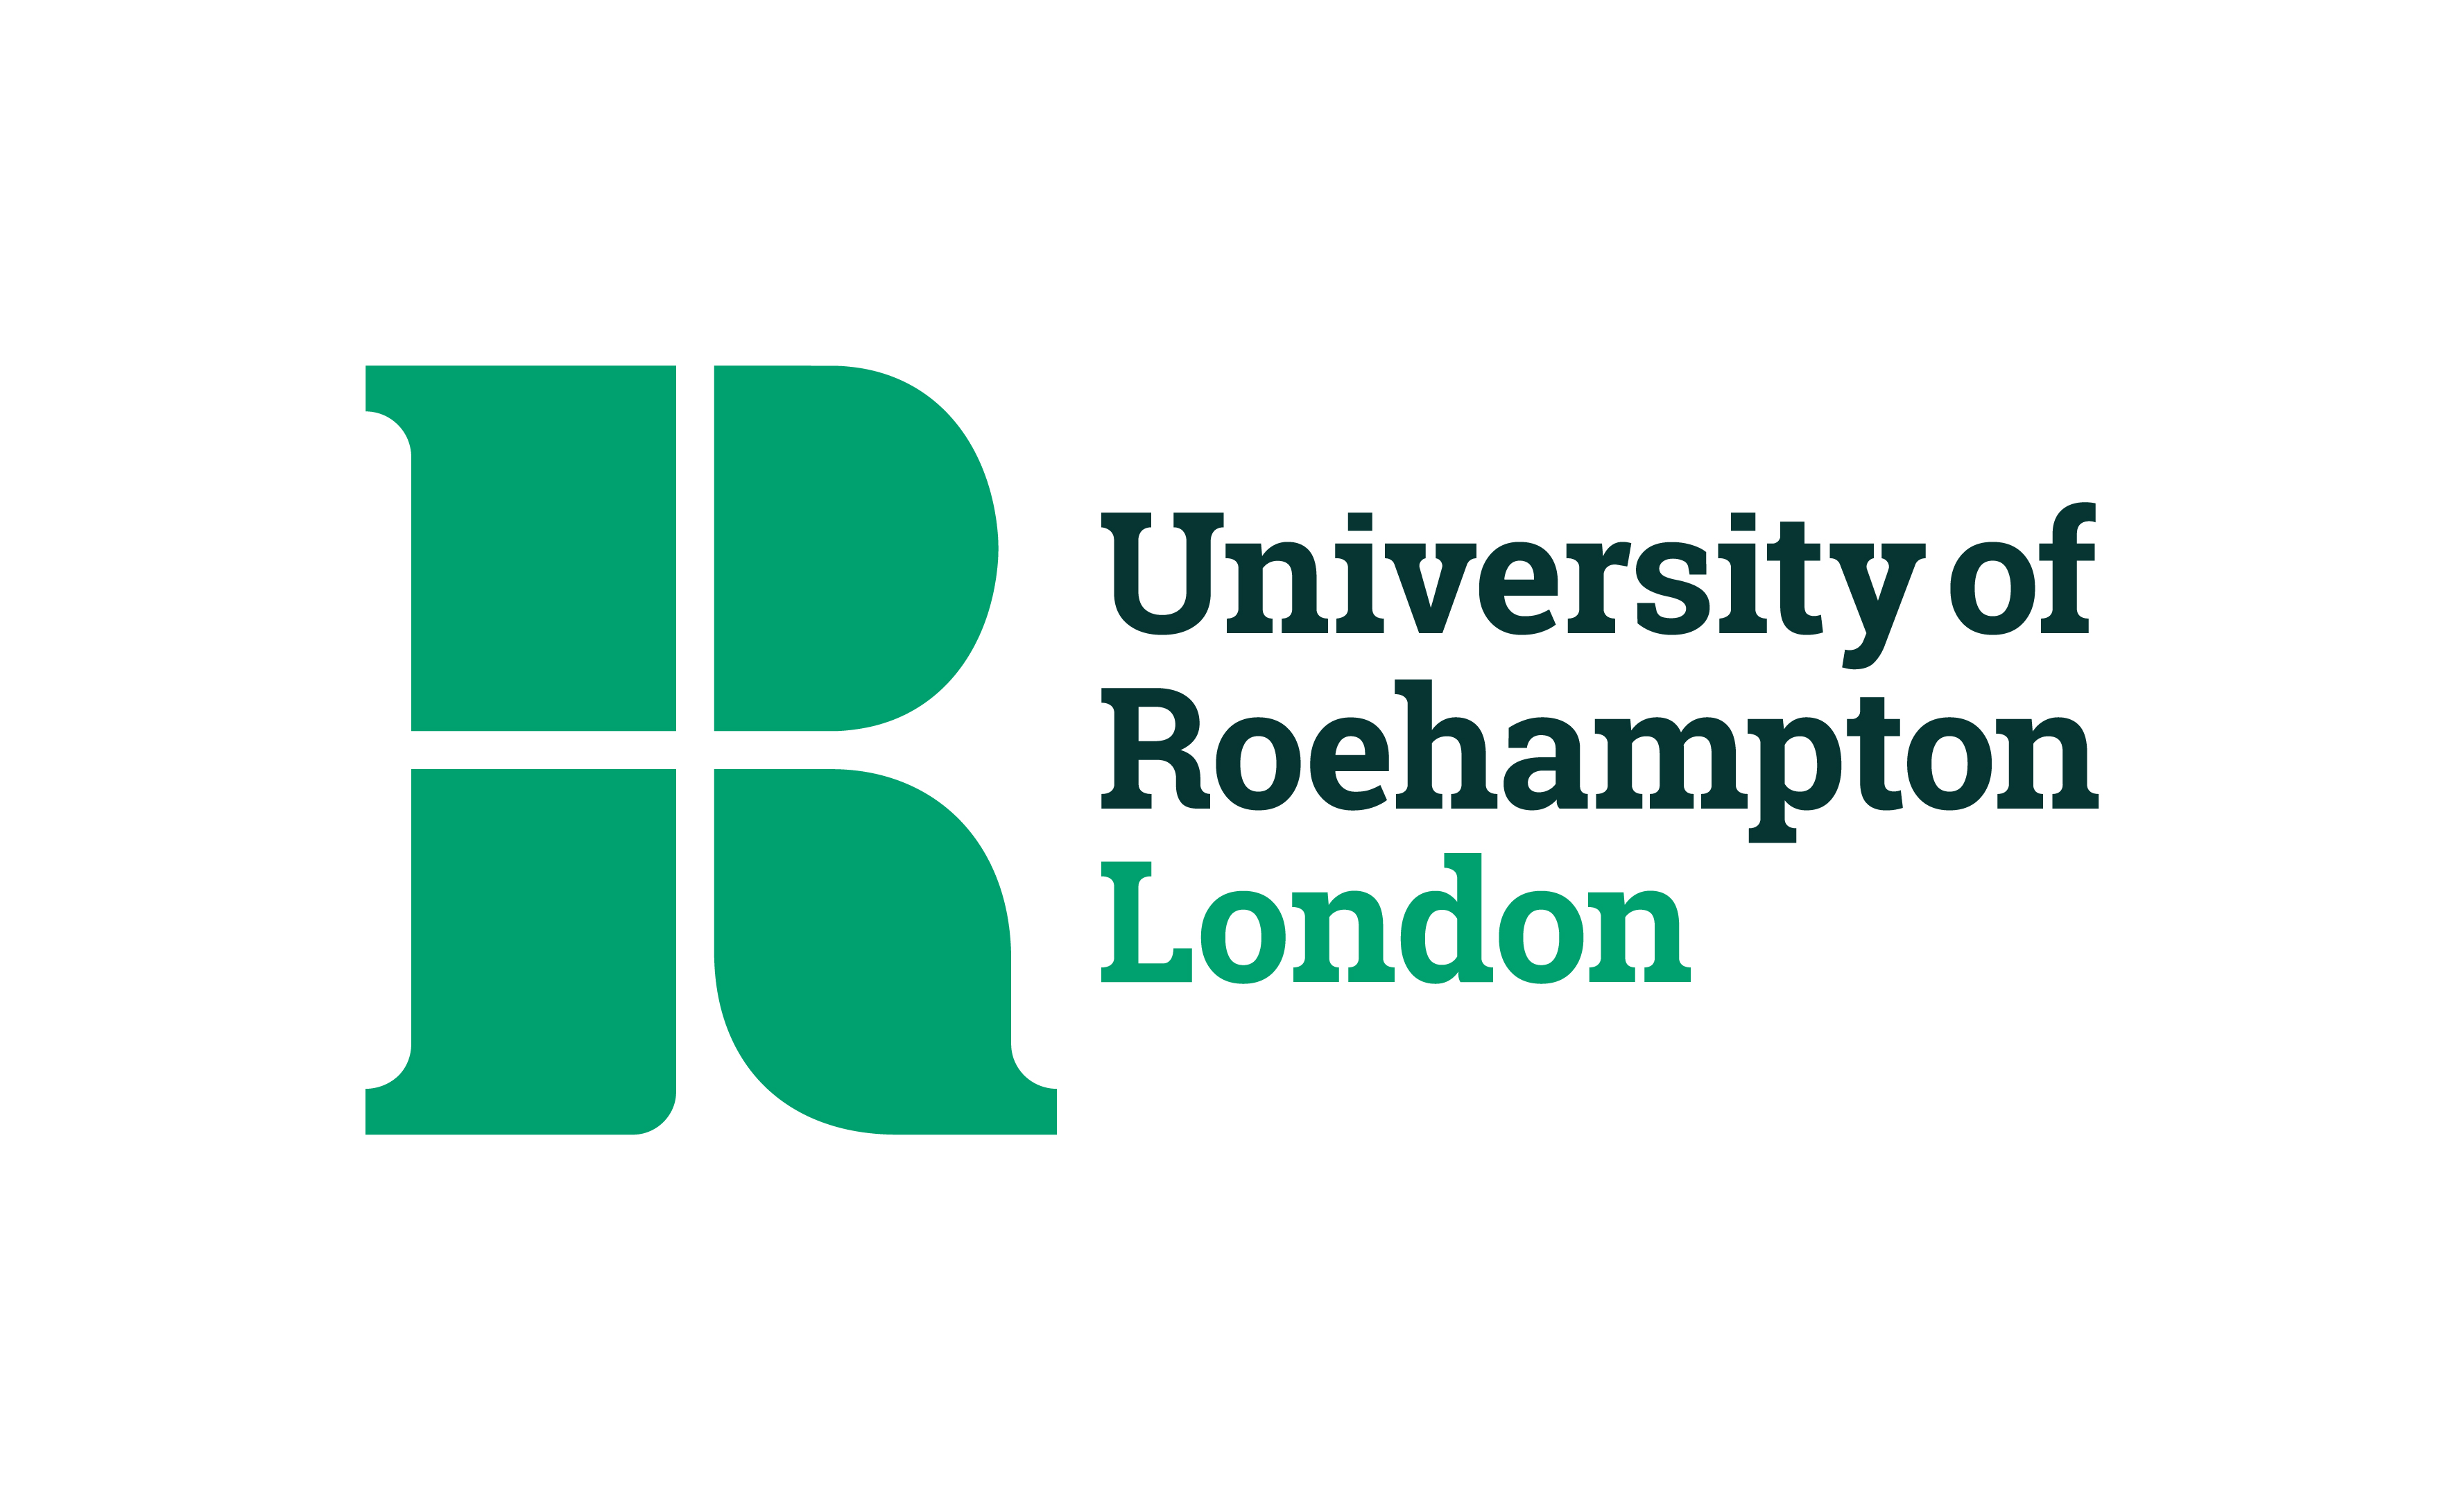 University of Roehampton: Education